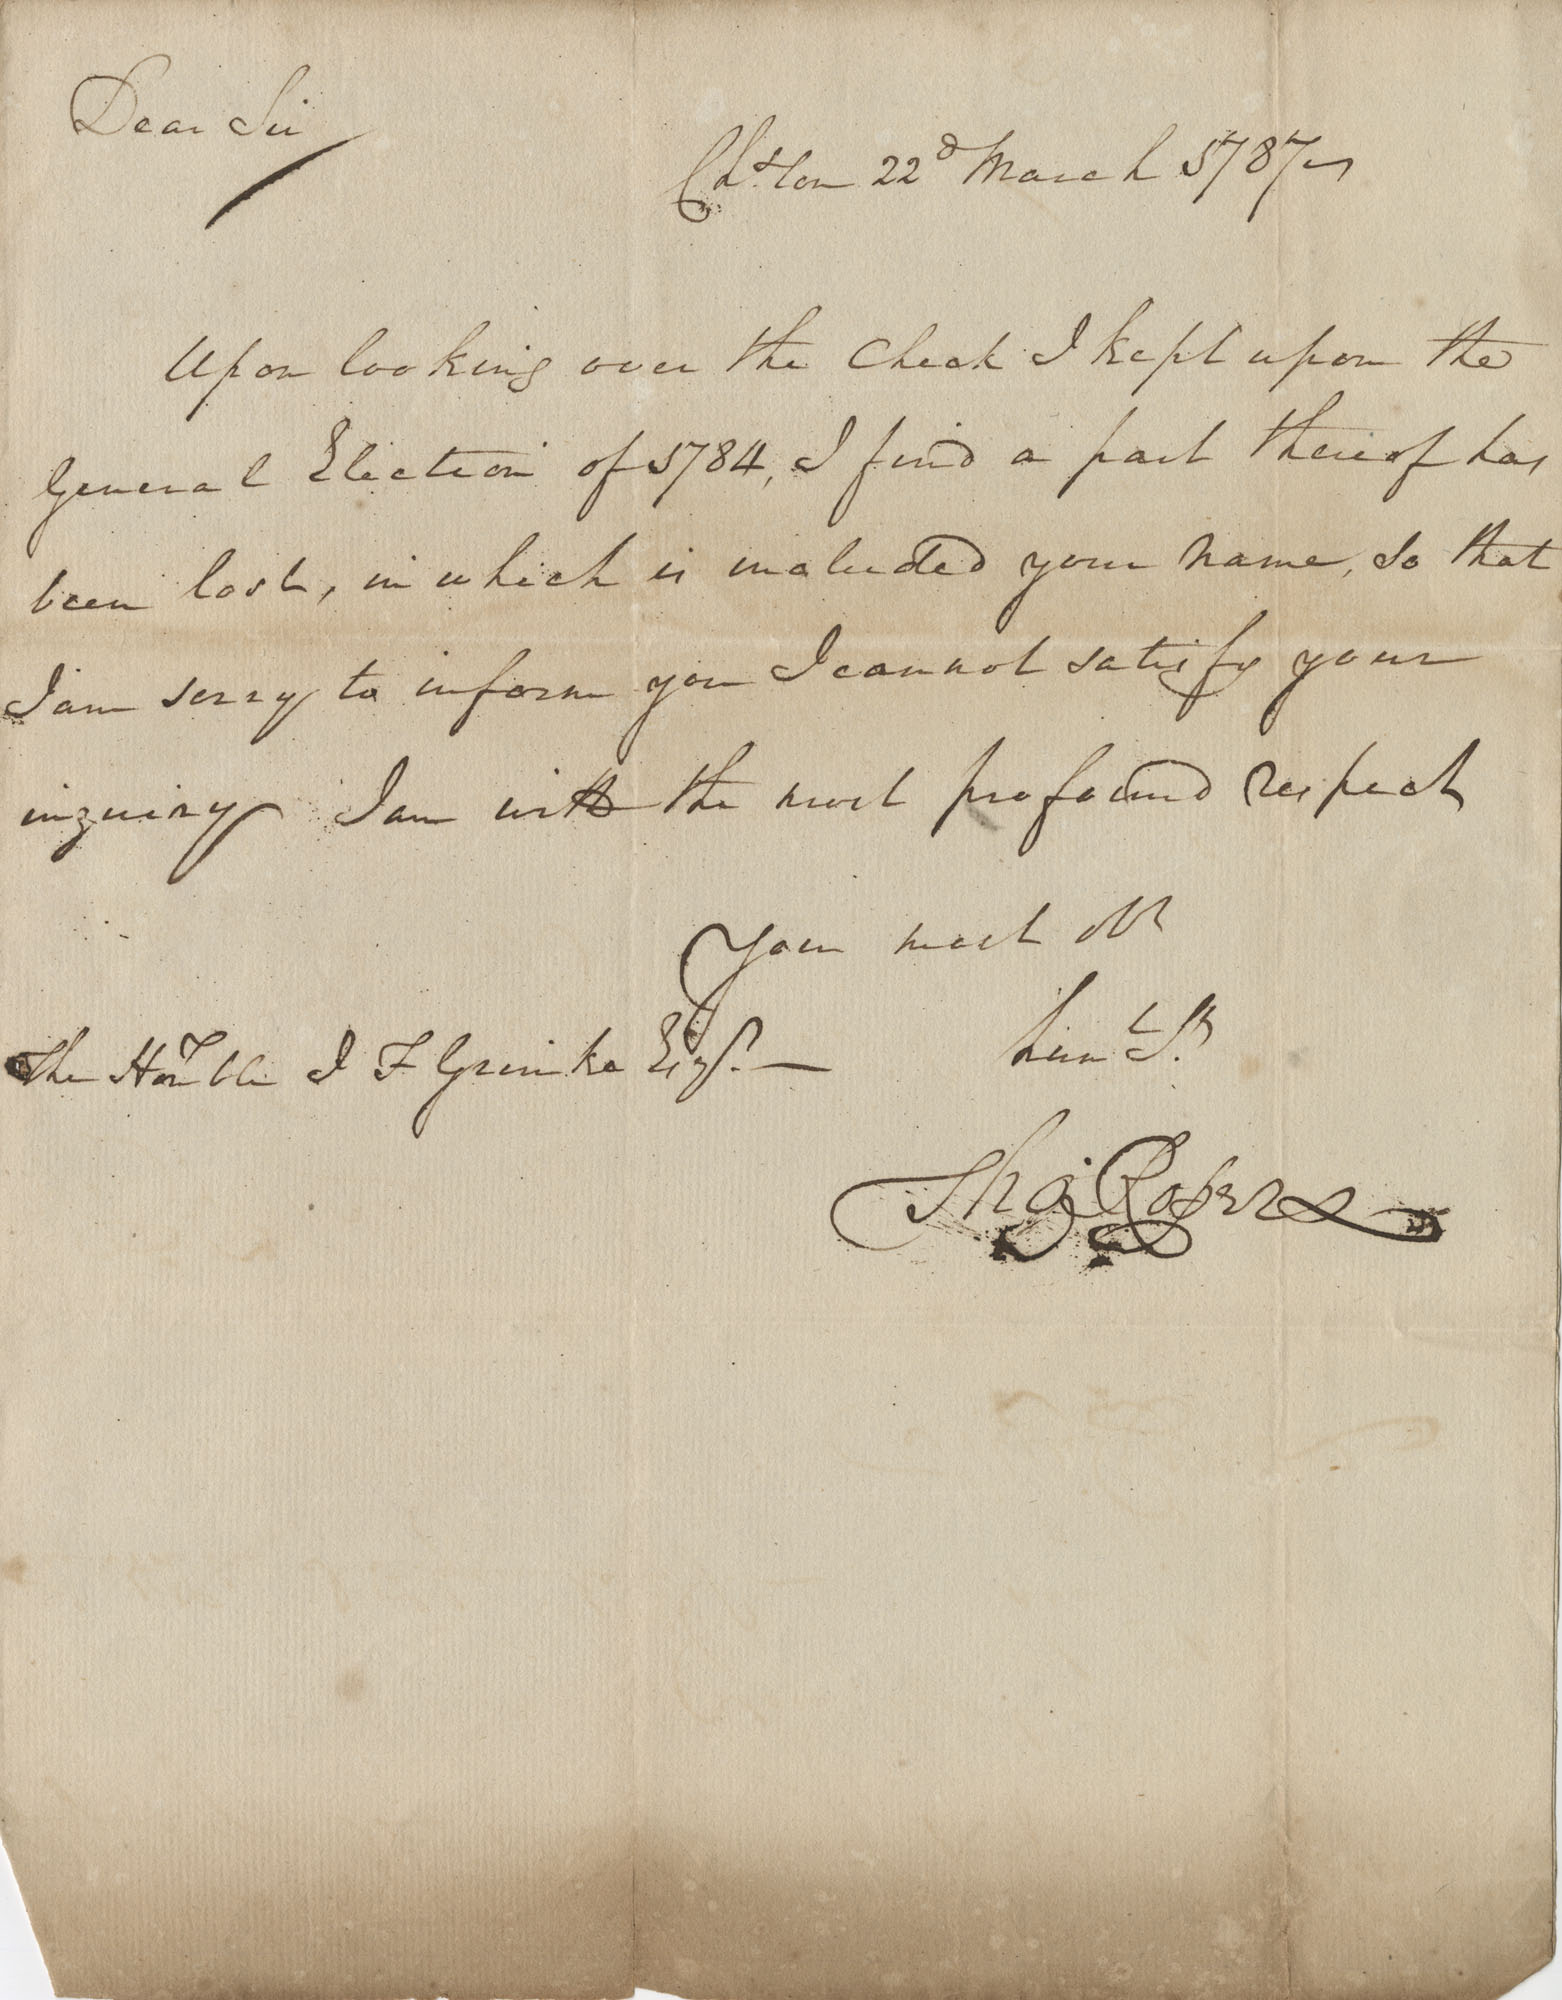 Letter to John F. Grimke from Thomas Roper, March 22, 1787